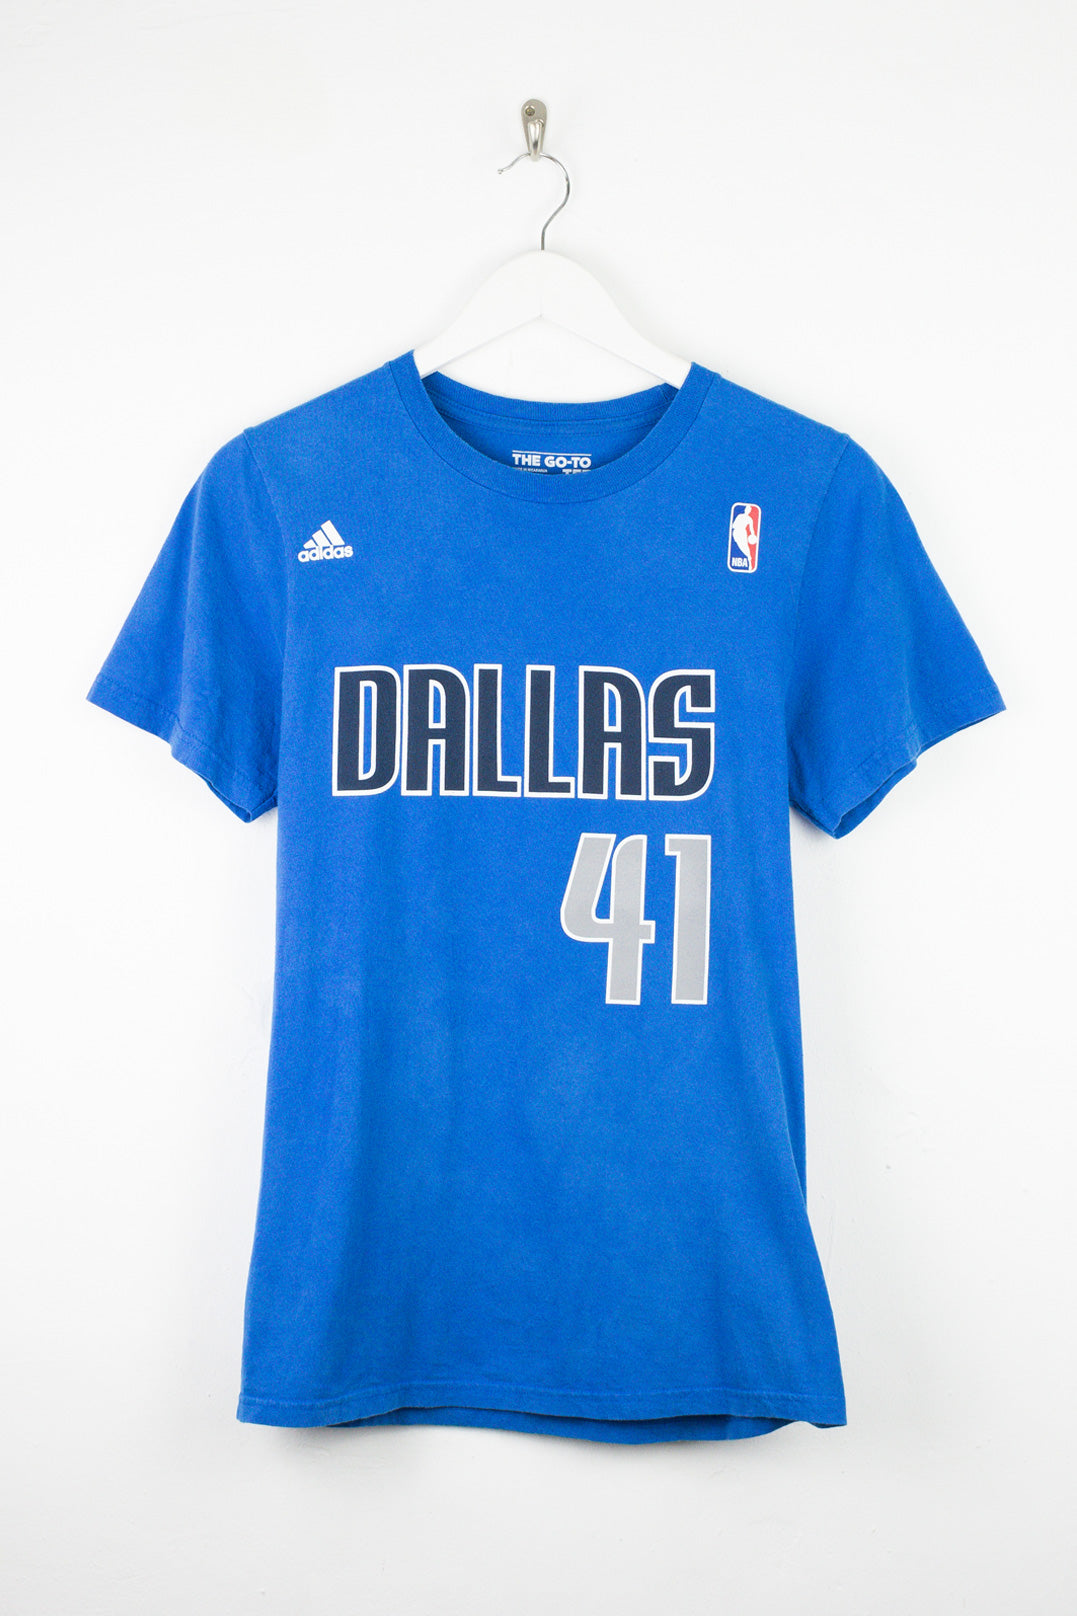 Dallas 41 NBA